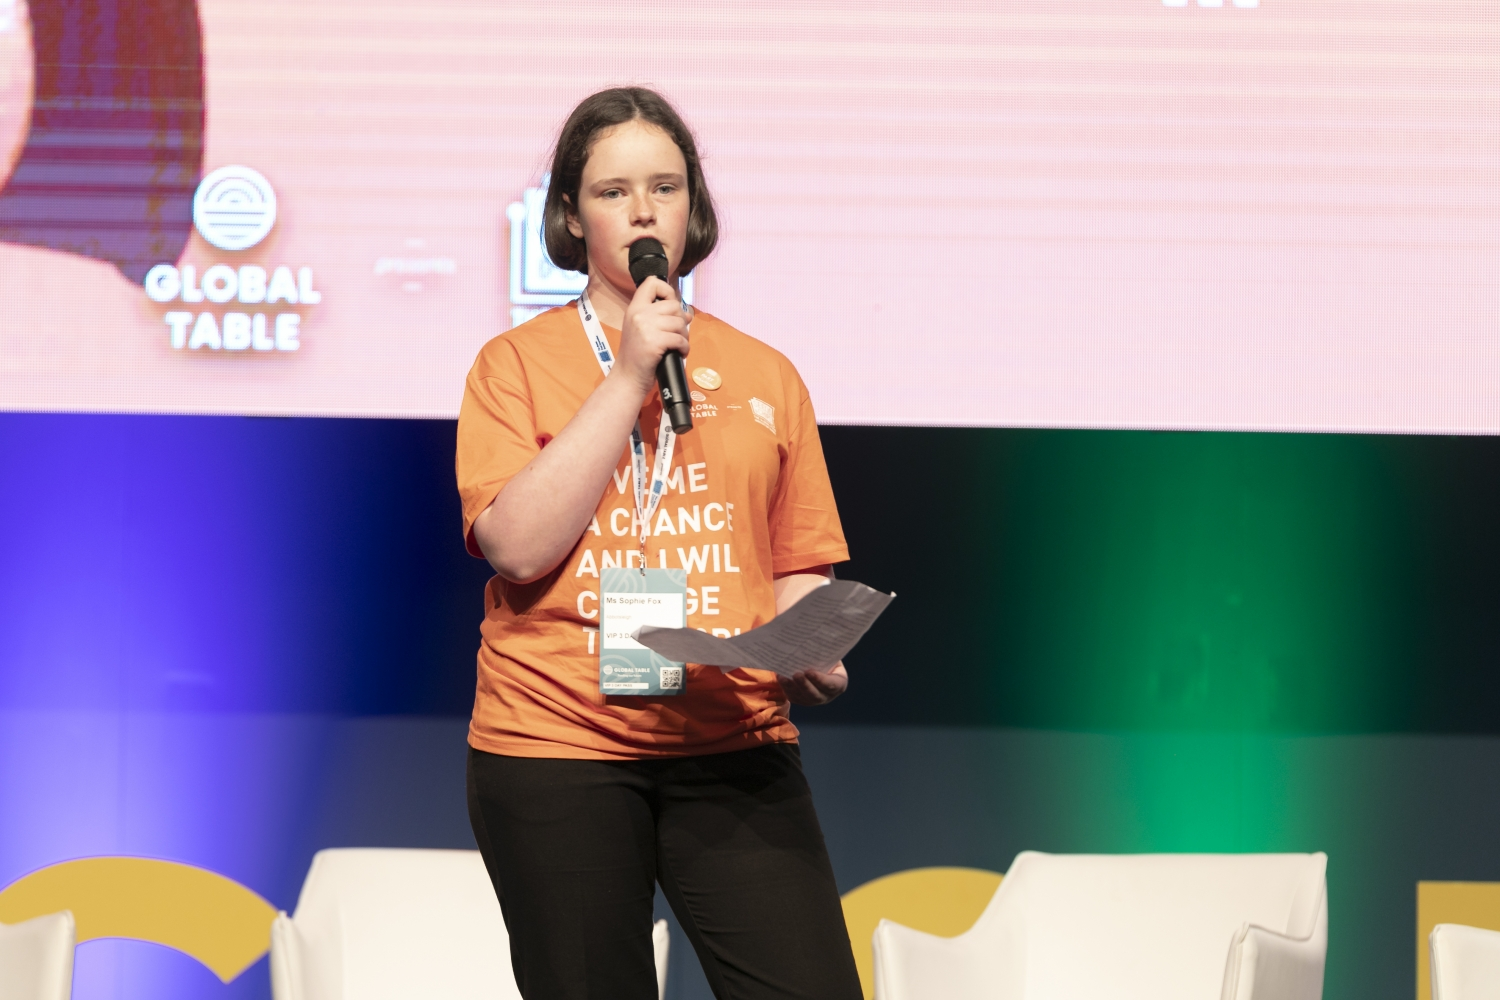 Sophie Fox, Teenovator at Global Table 2019